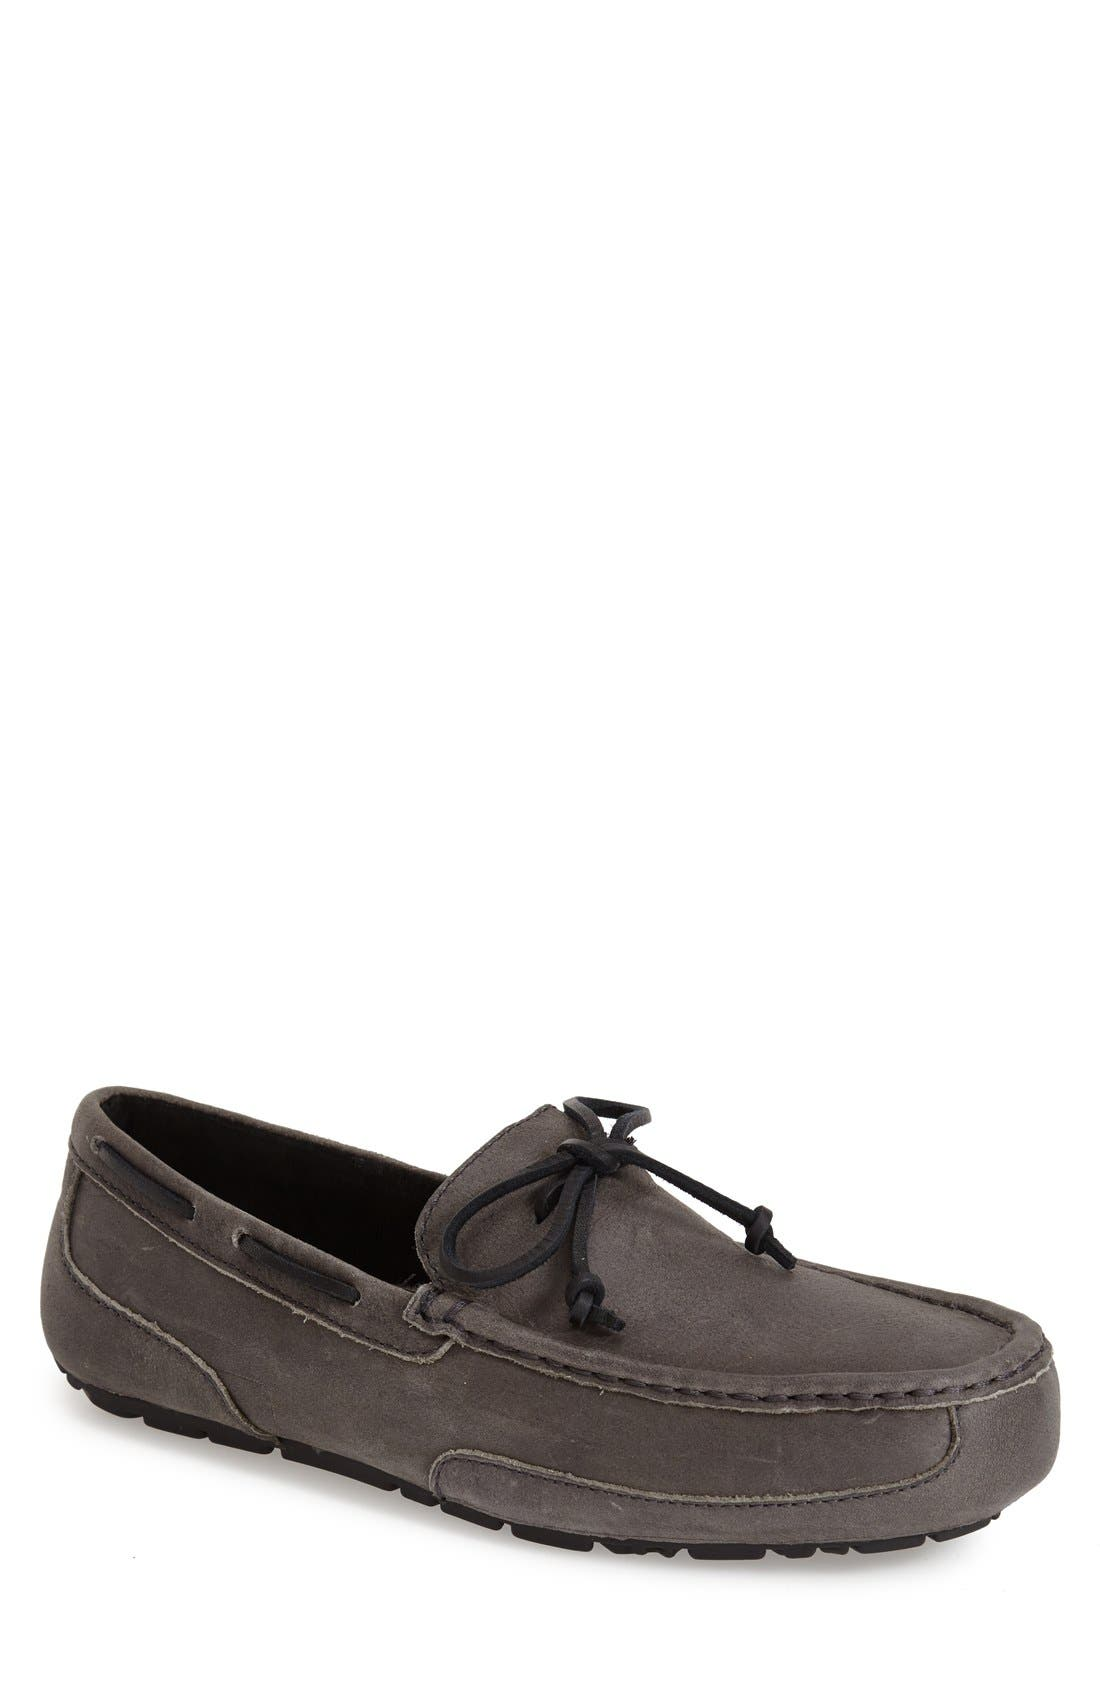 'Chester' Driving Loafer,                             Main thumbnail 3, color,